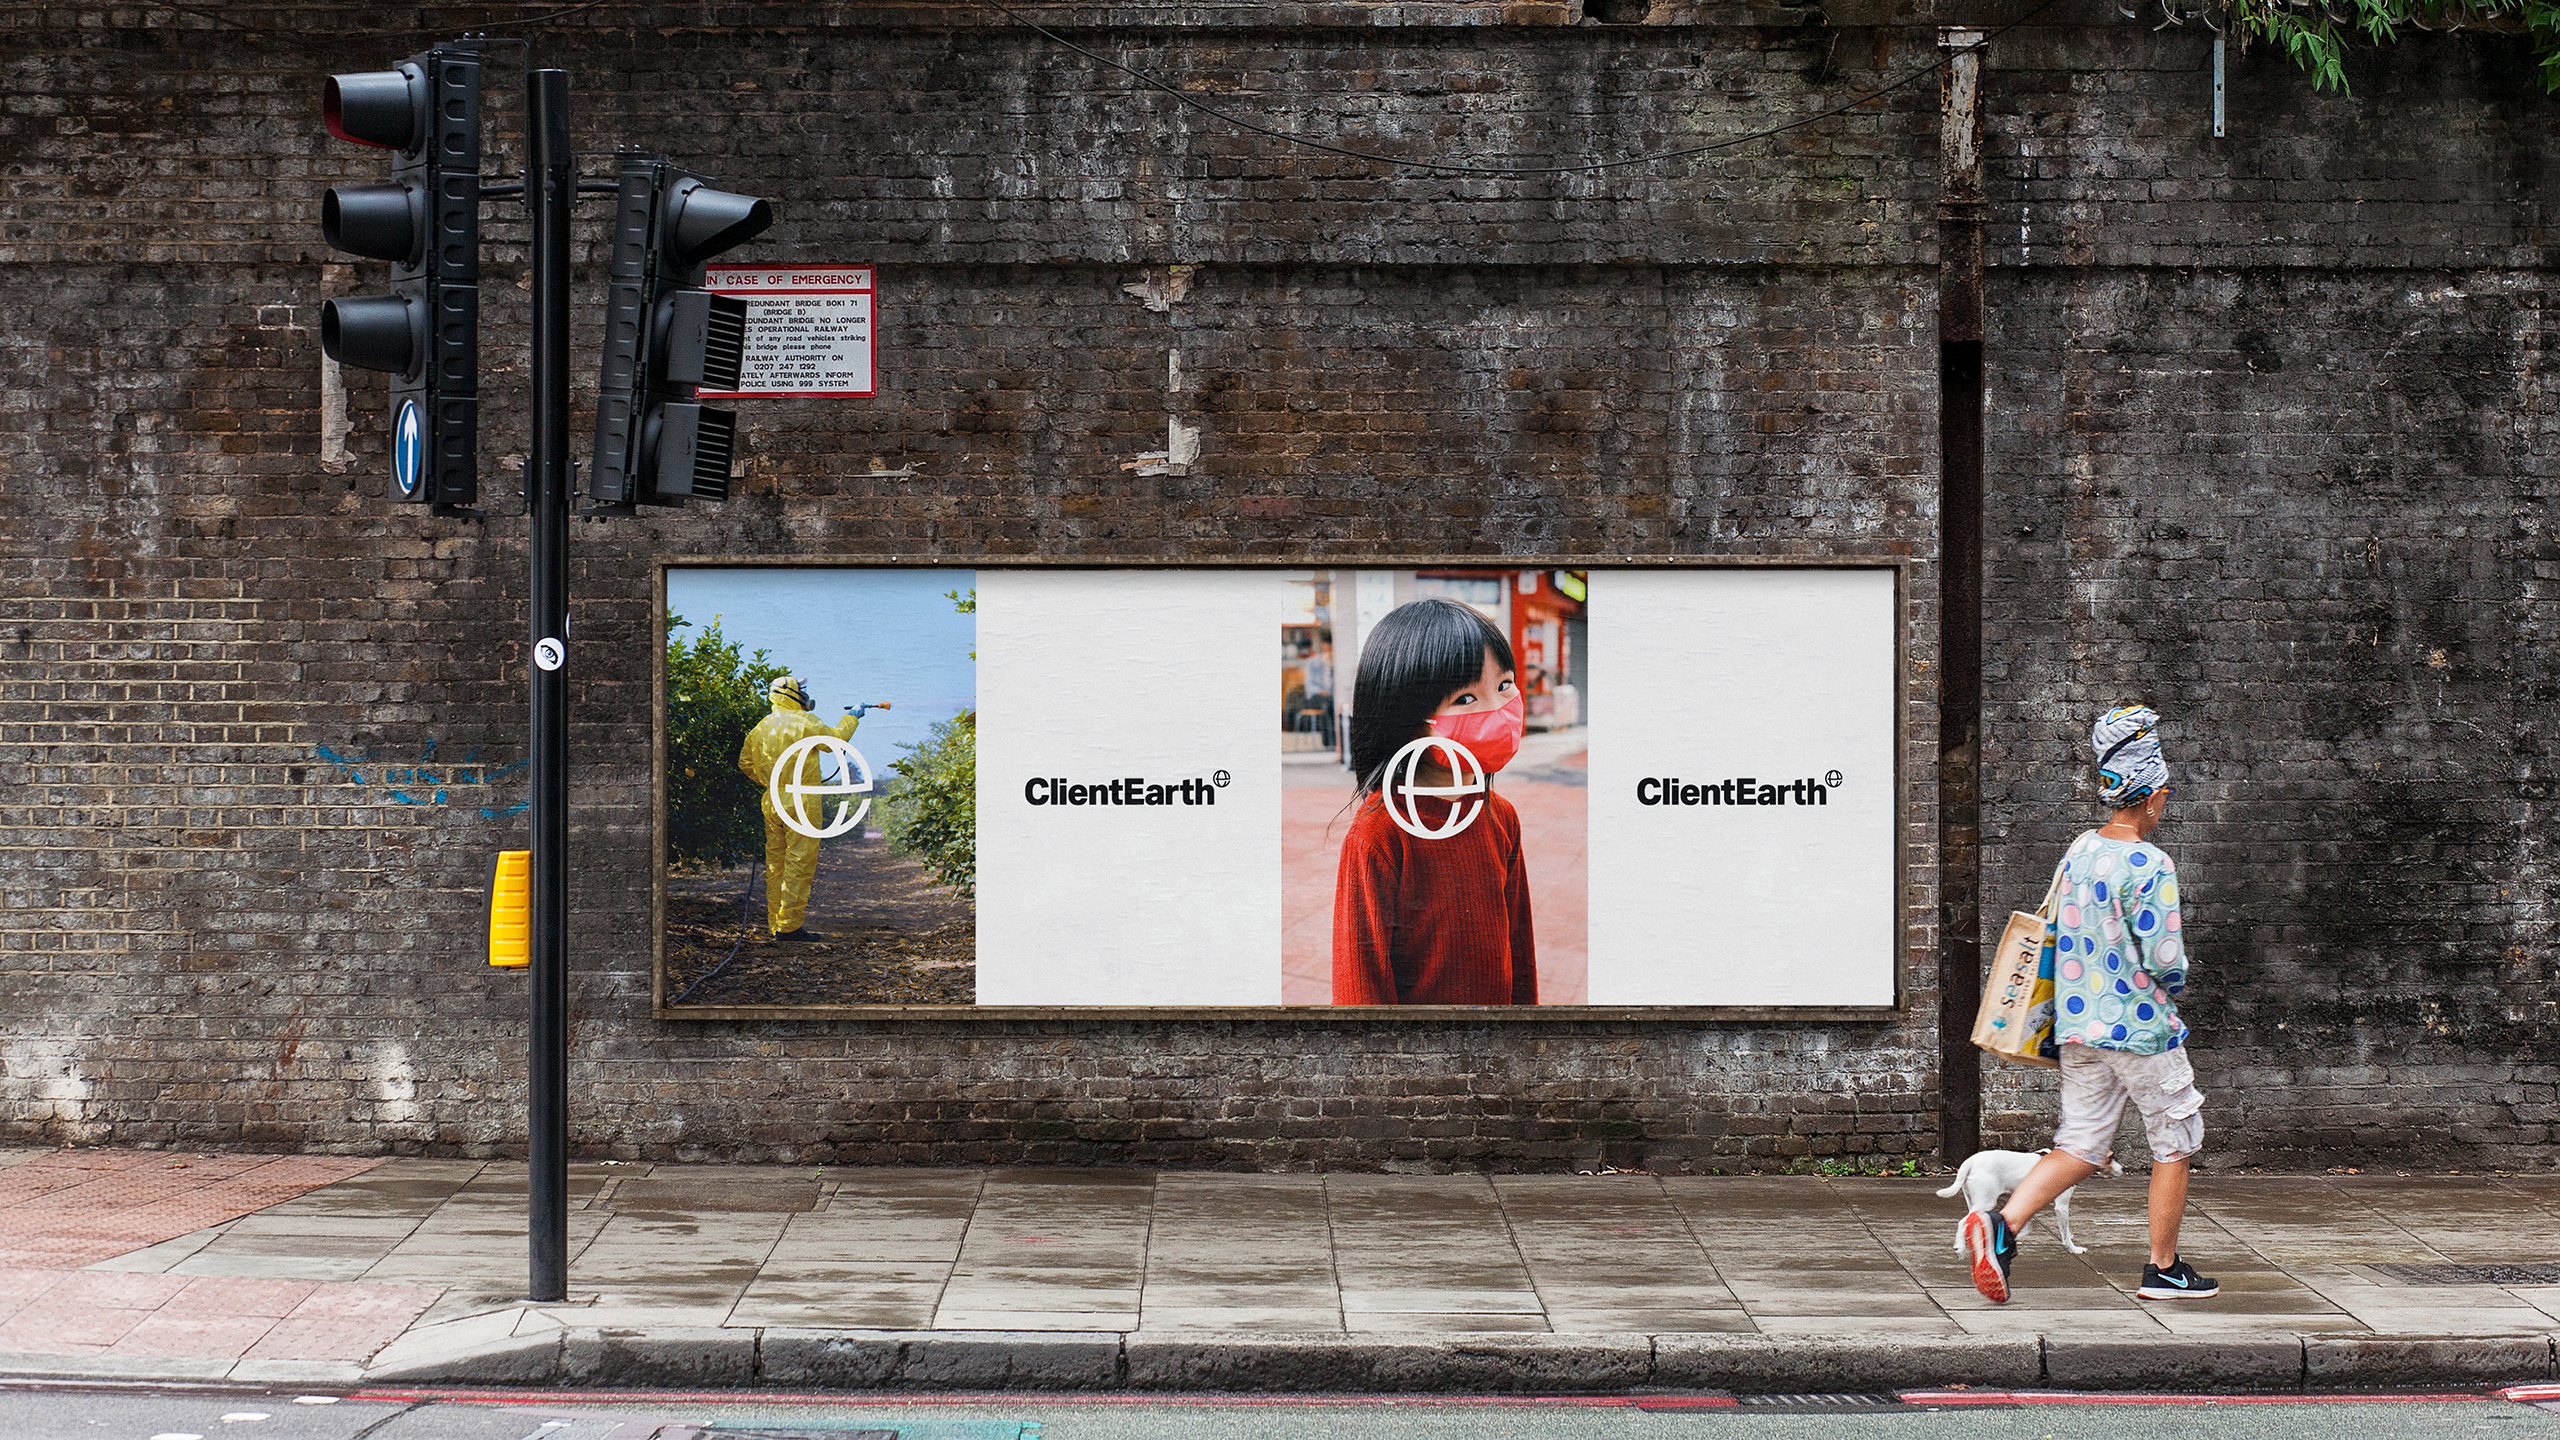 ClientEarth outdoor campaign. Strategy and creative direction by Apropos. Design and art direction by Erica Dorn. Strategy and copywriting by Clare Aitken.